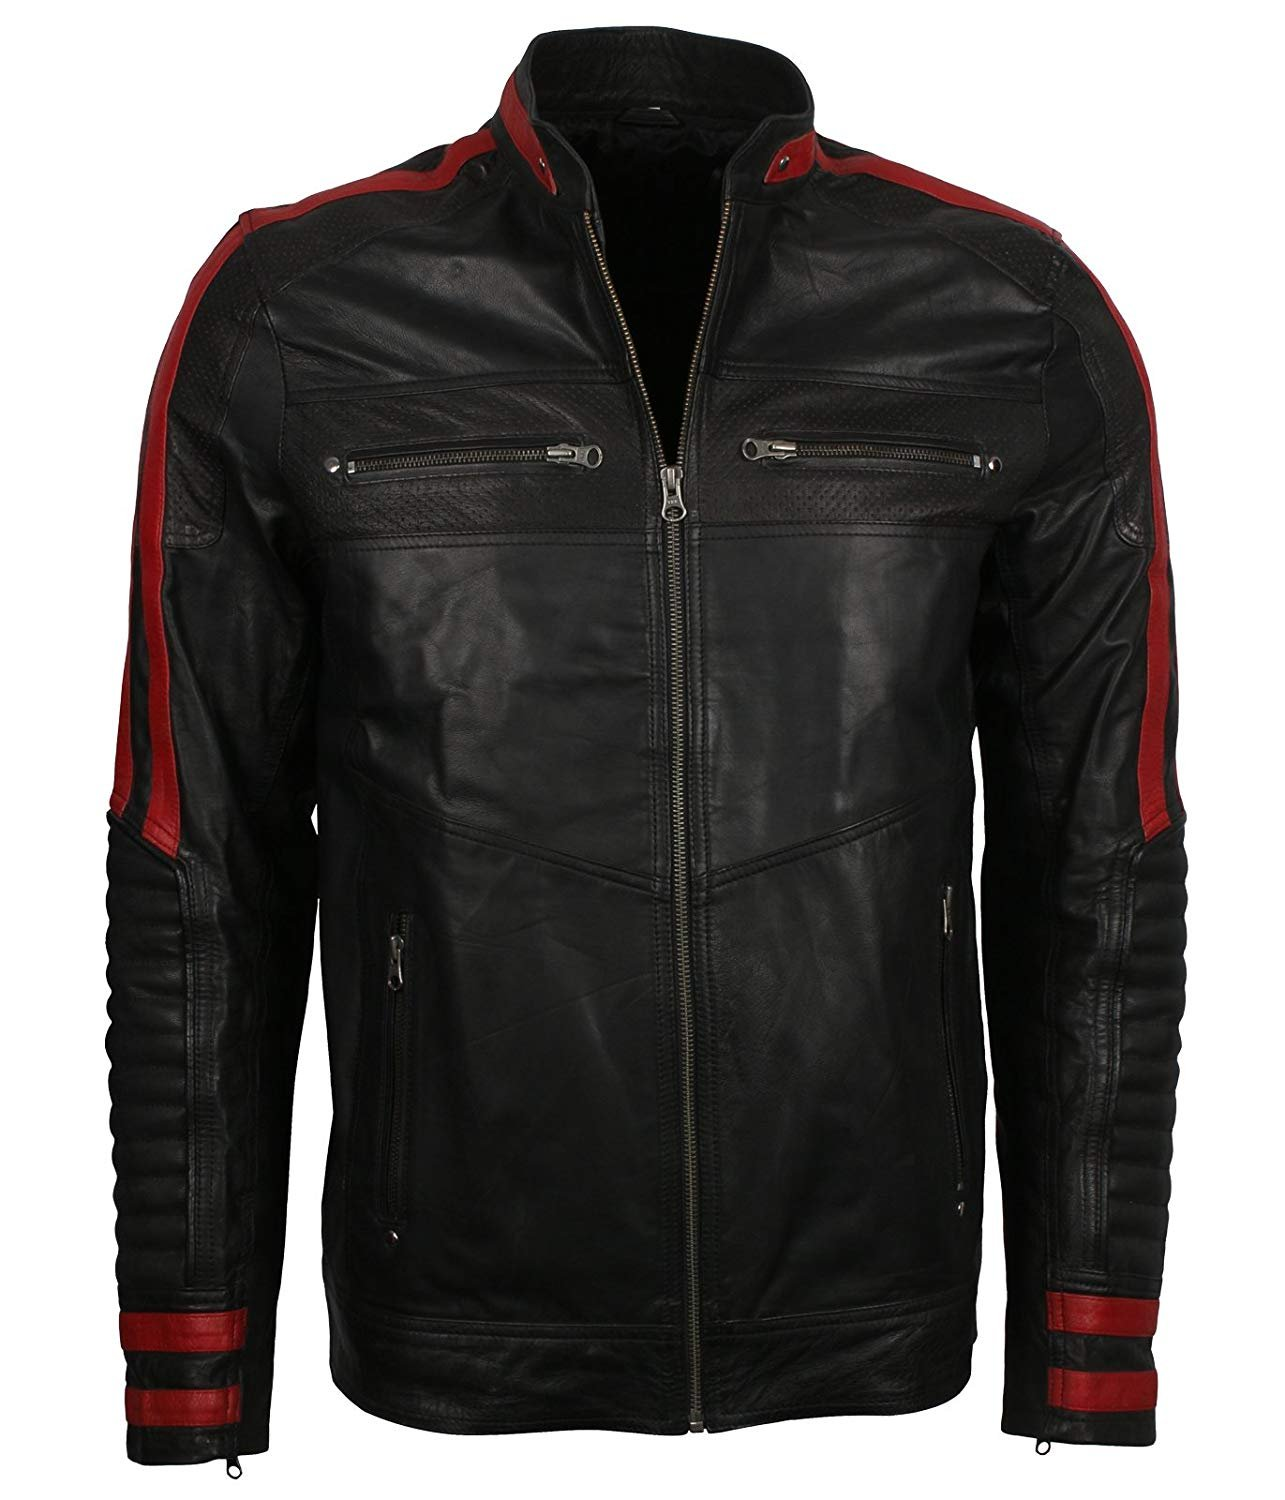 NEW MEN,S FASHION STYLISH LOOKING BLACK WITH RED CONTRAST LEATHER MOTORCYCLE BLACK JACKET SIZE 6XL